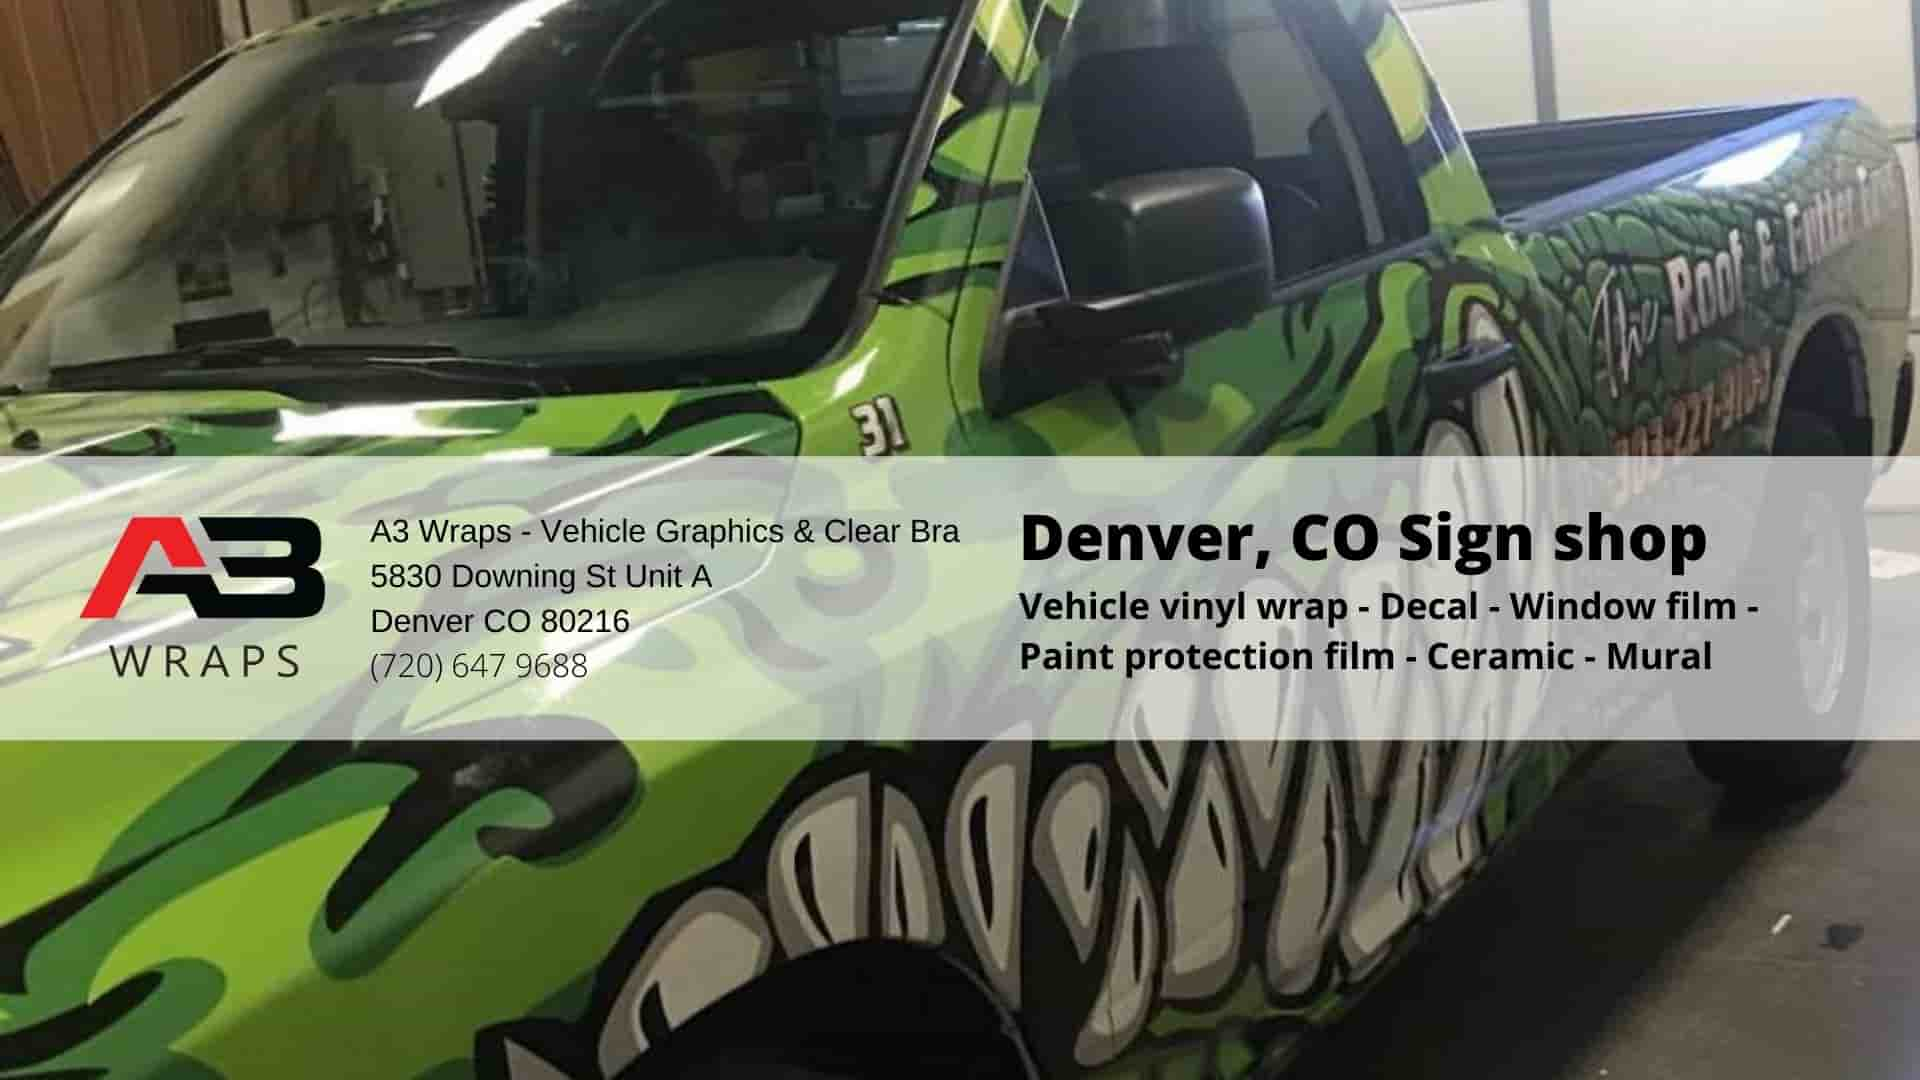 A3 Wraps - Vehicle Graphics & Clear Bra serving Denver Colorado